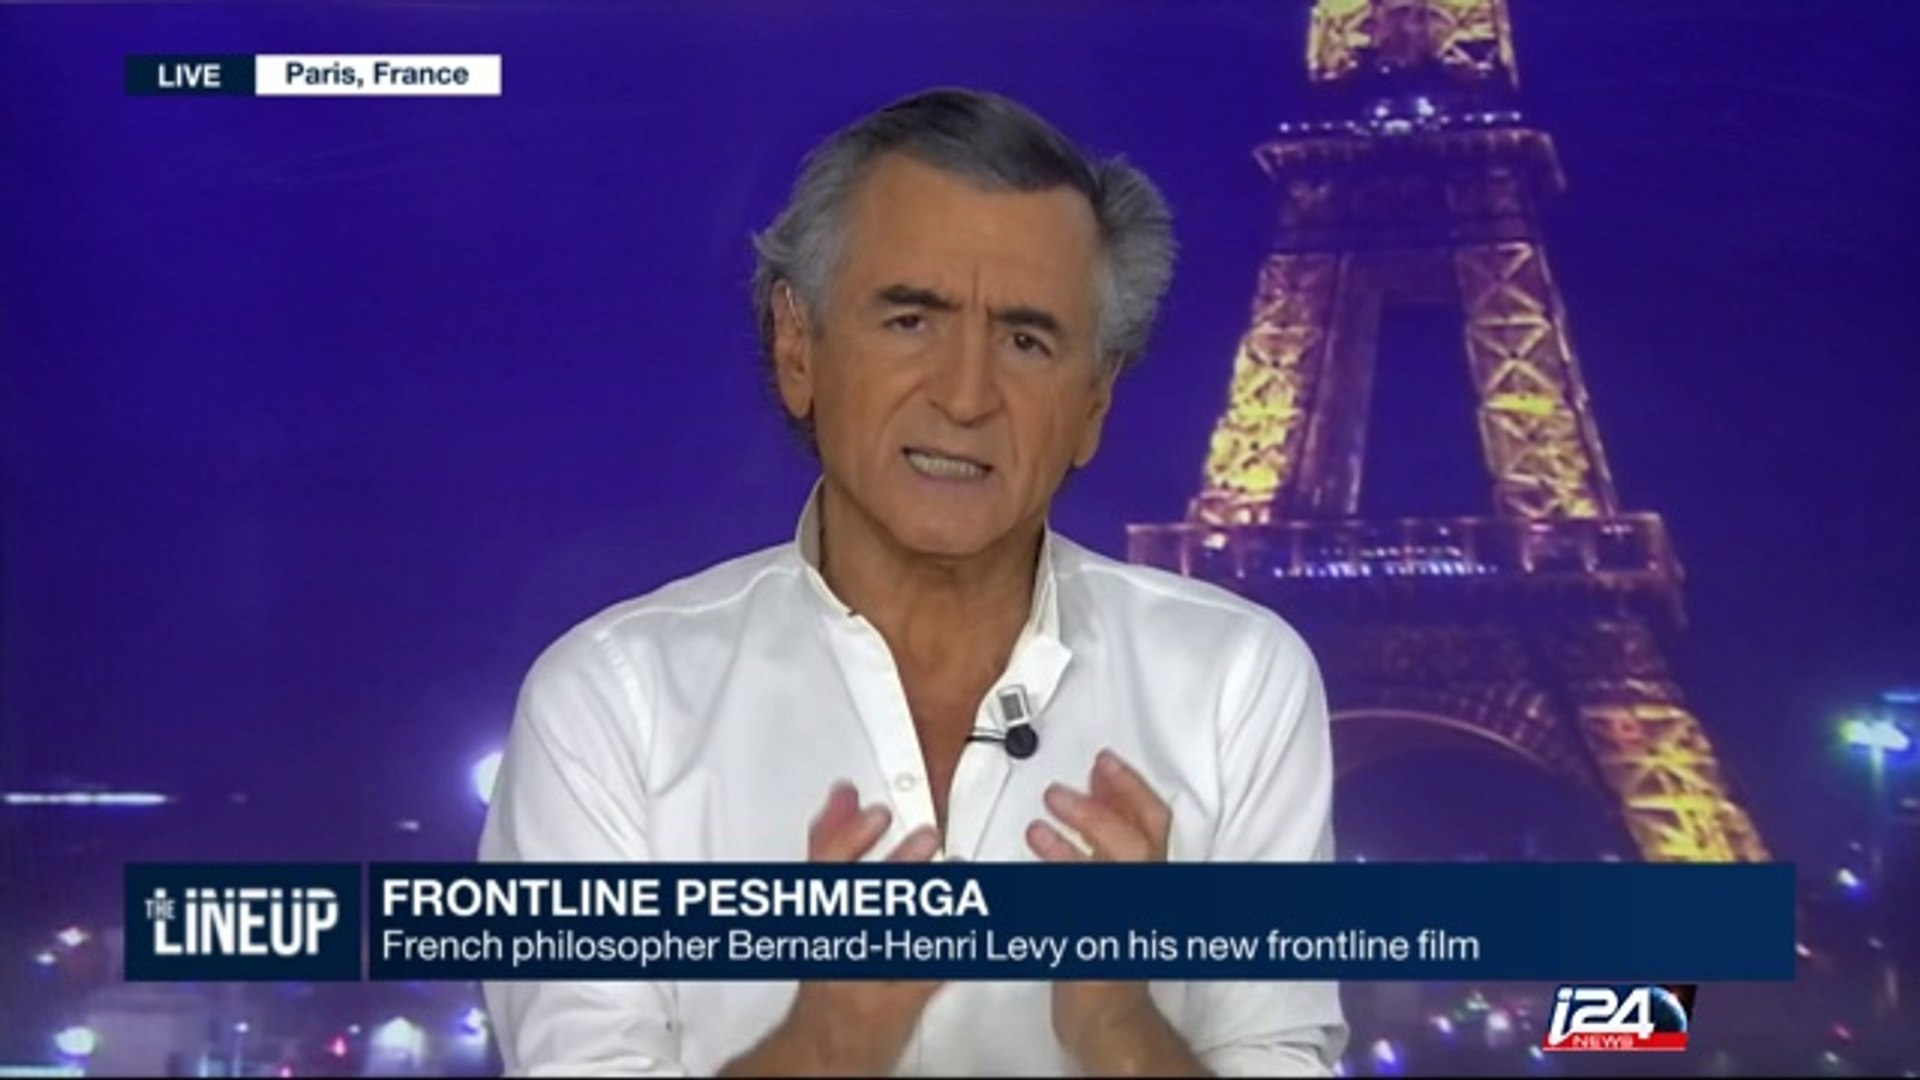 Bernard Henri-Levy on his new documentary